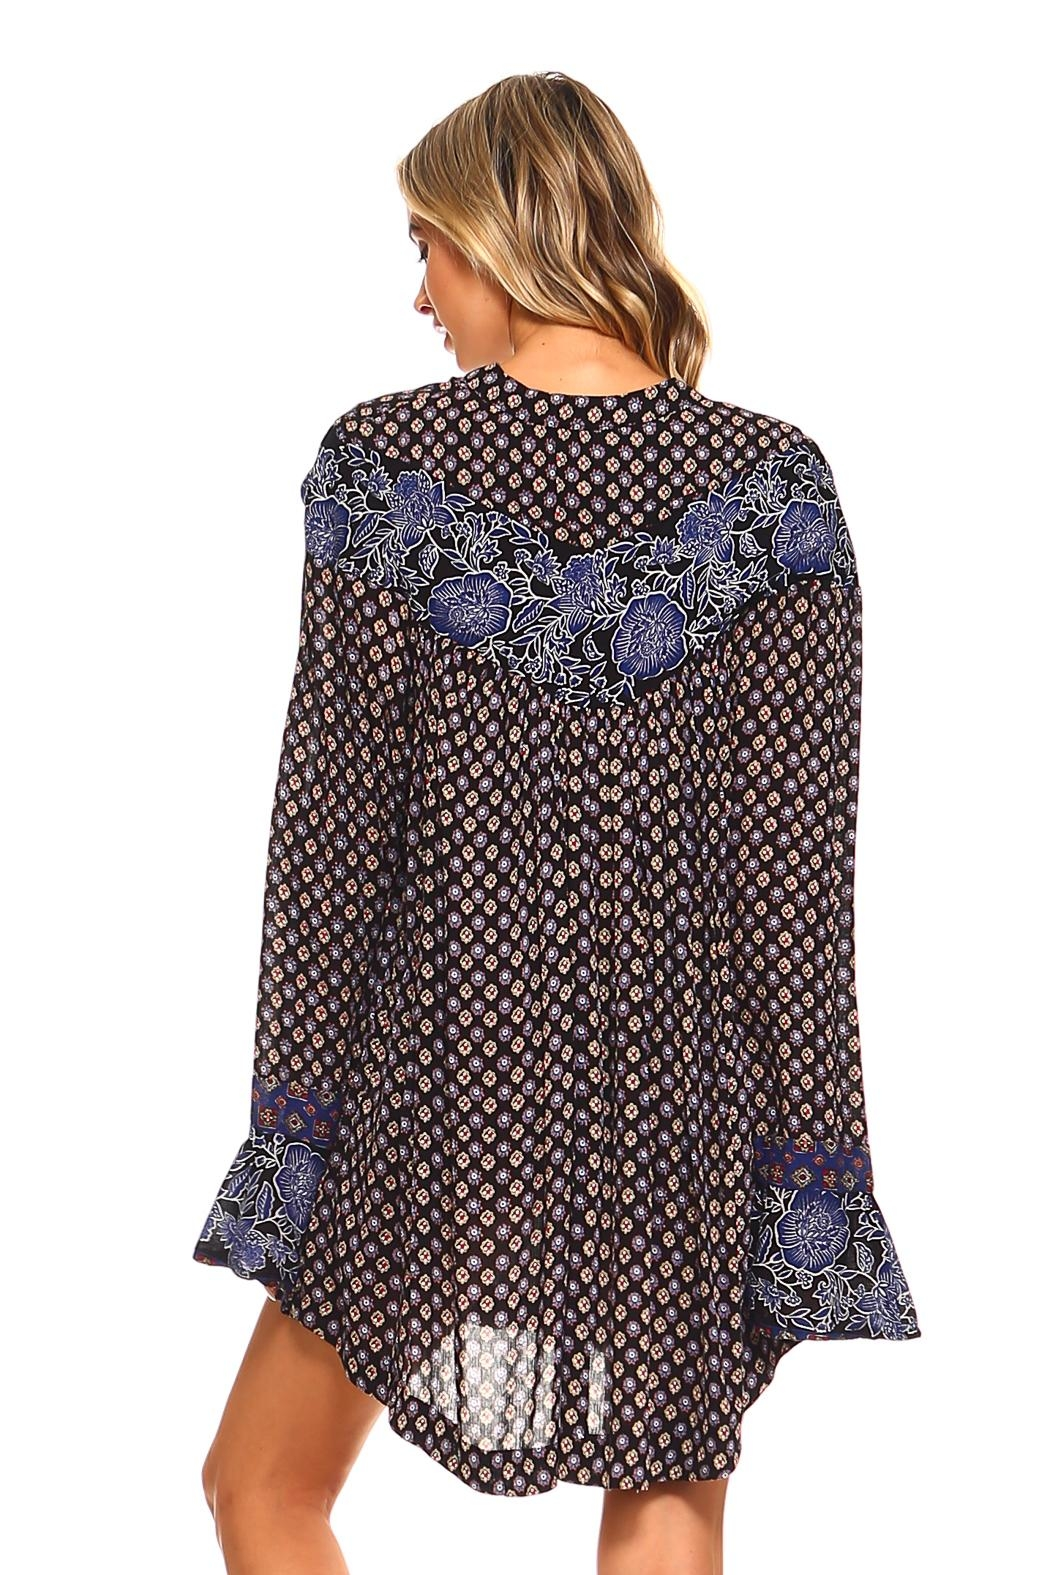 Lola P. Printed Woven Tunic - Side Cropped Image